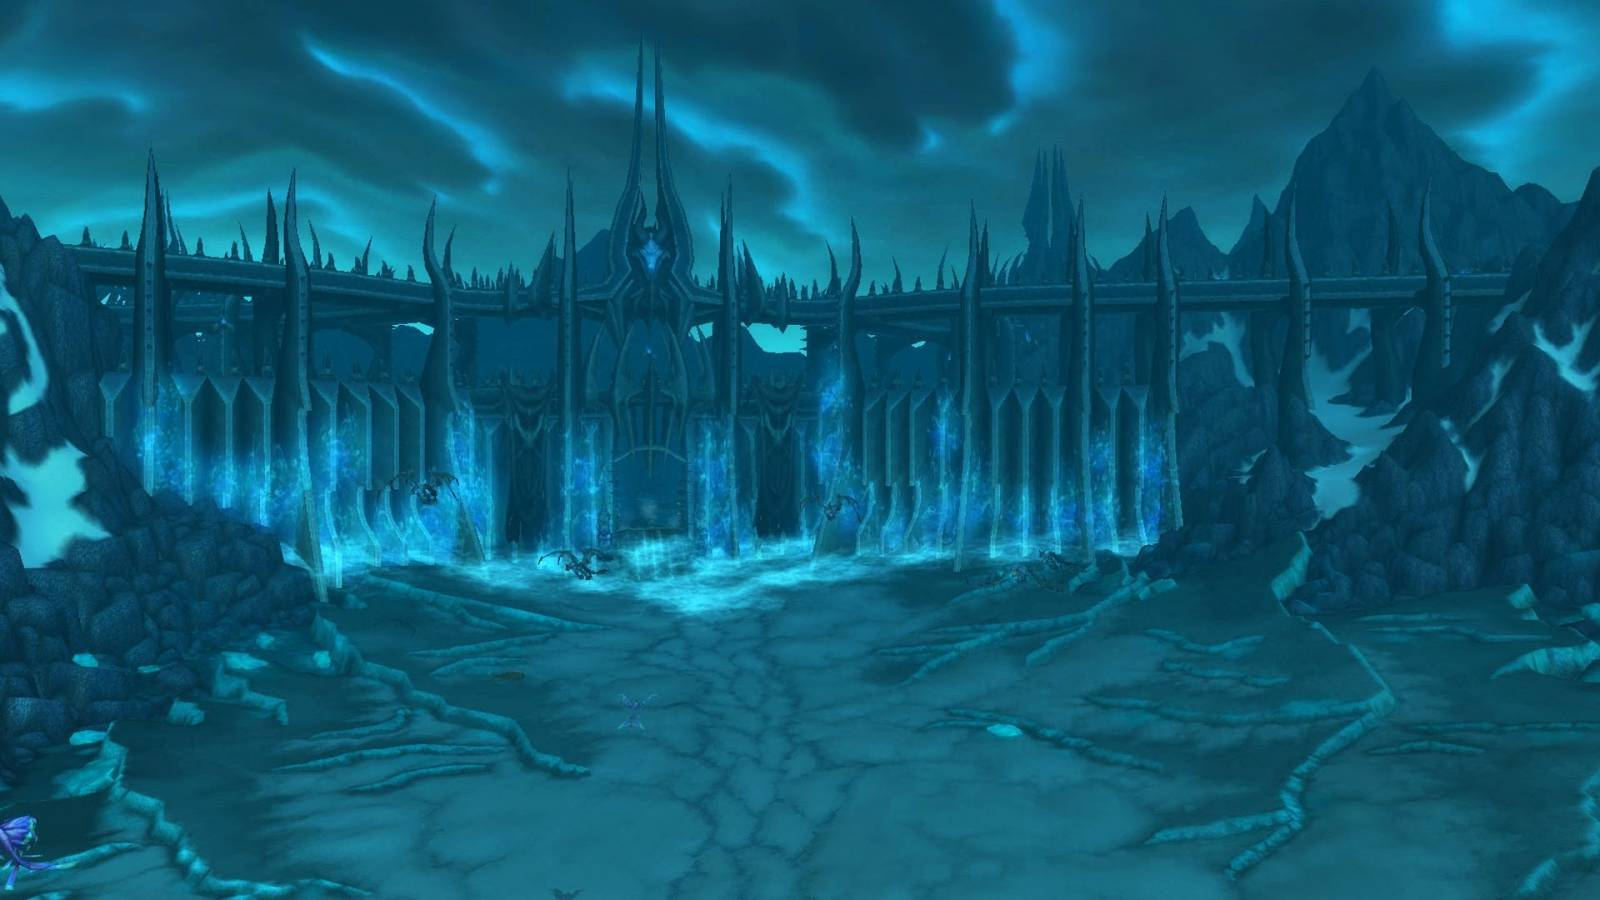 in-game screenshot of icecrown citadel